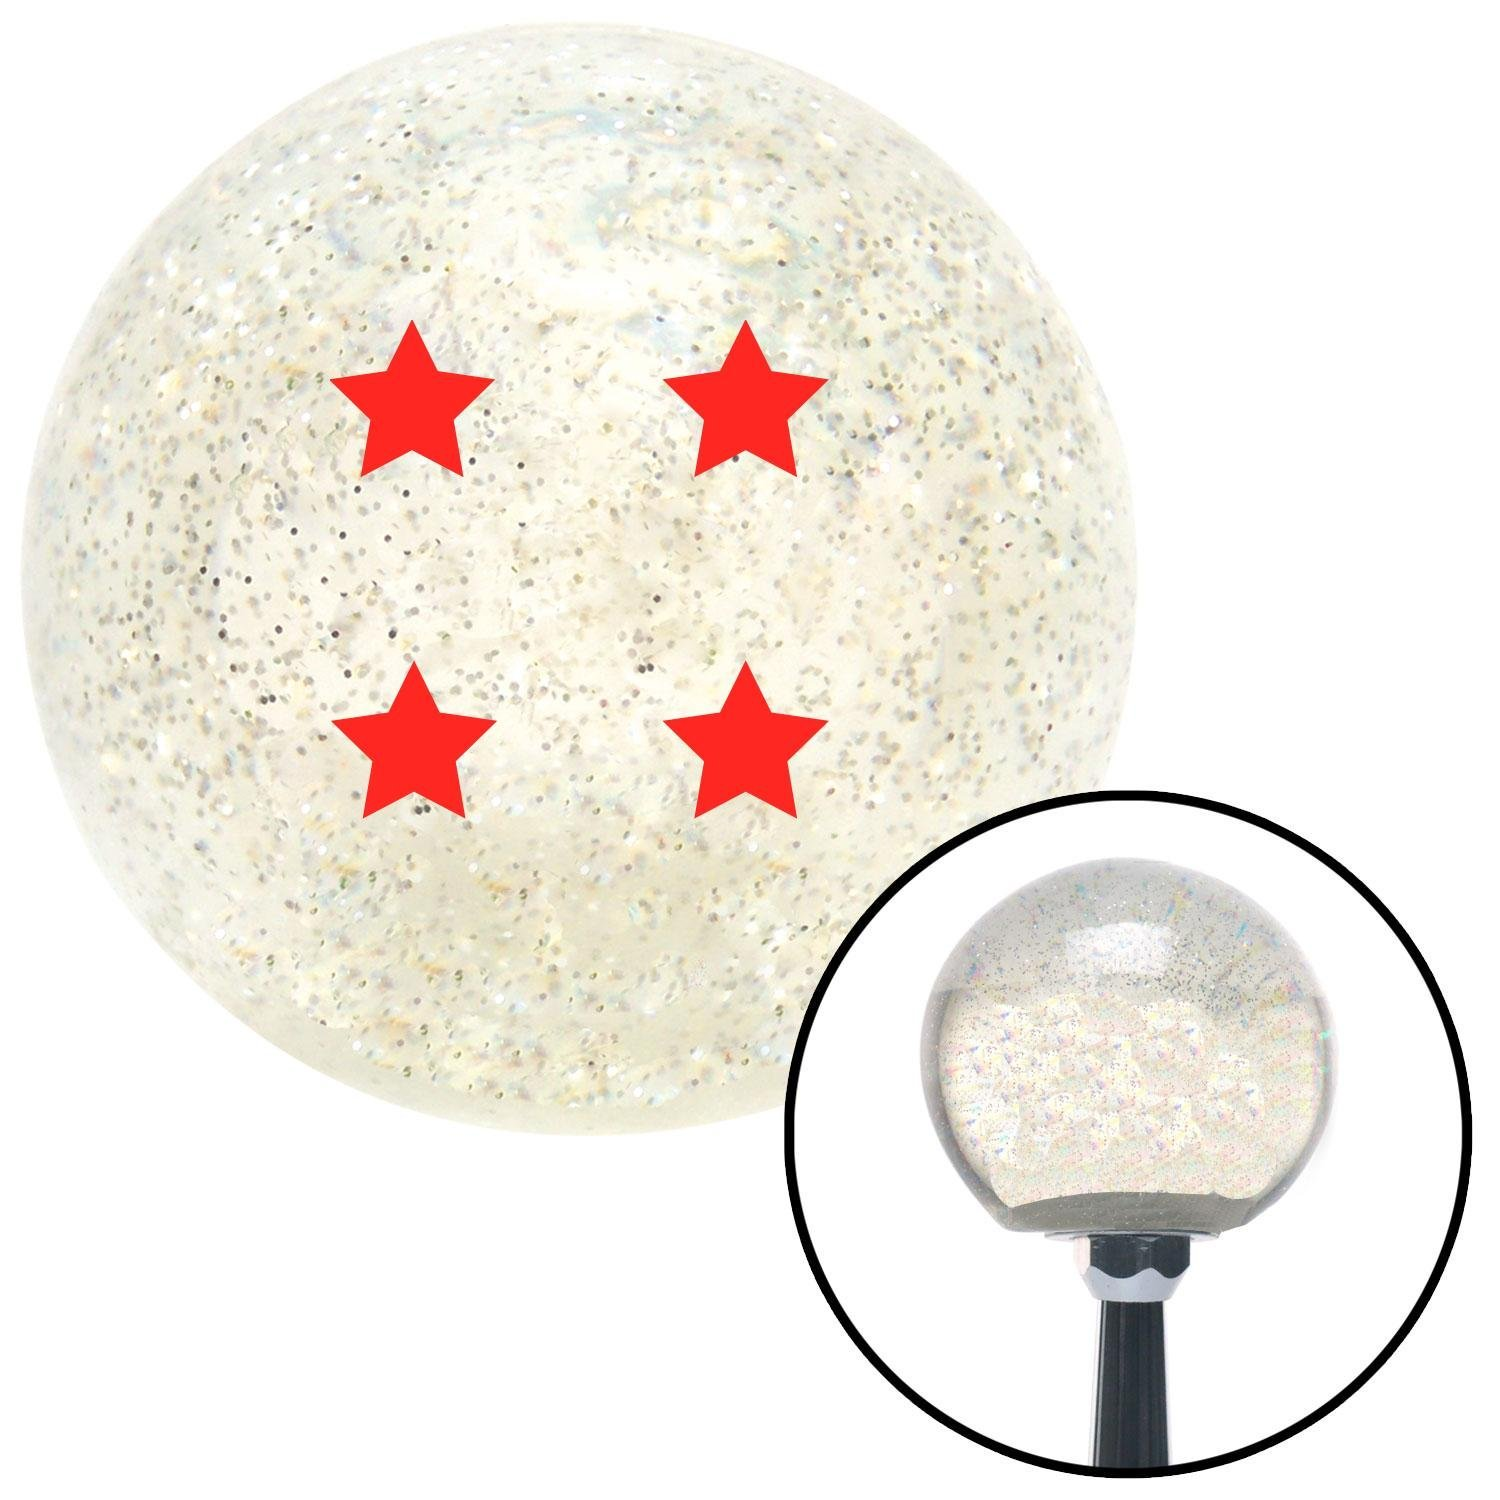 Red Dragon Ball Z - 4 Star American Shifter 141813 Clear Metal Flake Shift Knob with M16 x 1.5 Insert